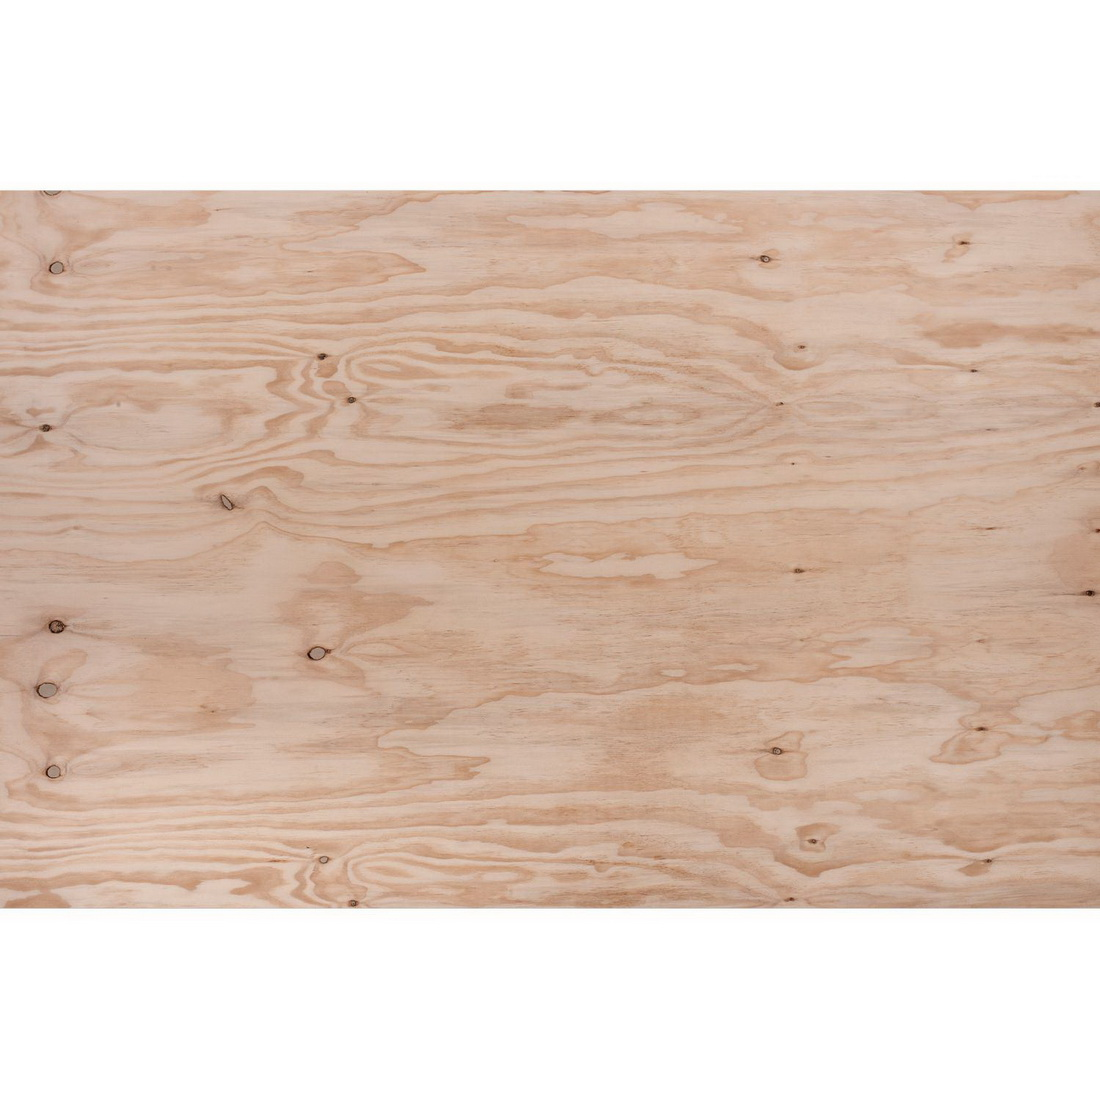 Structural Flooring Plywood Tongue & Groove Edge H3.2 Treated CD 2700 x 1200 x 19mm